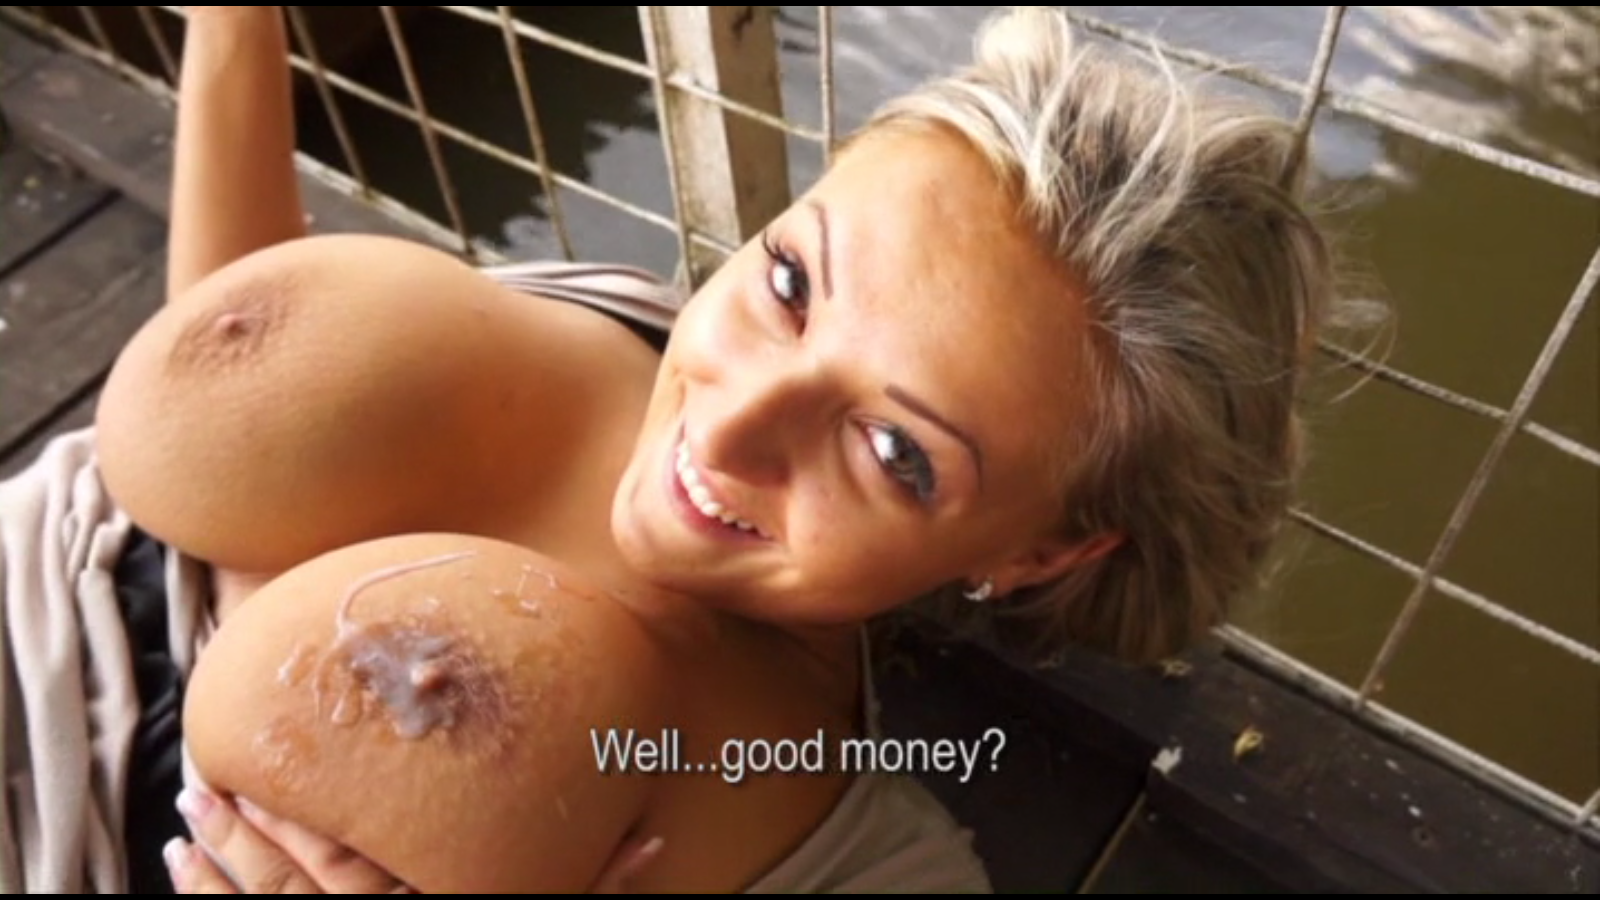 Public pickups hot czech babe is paid cash for public bj - 3 4